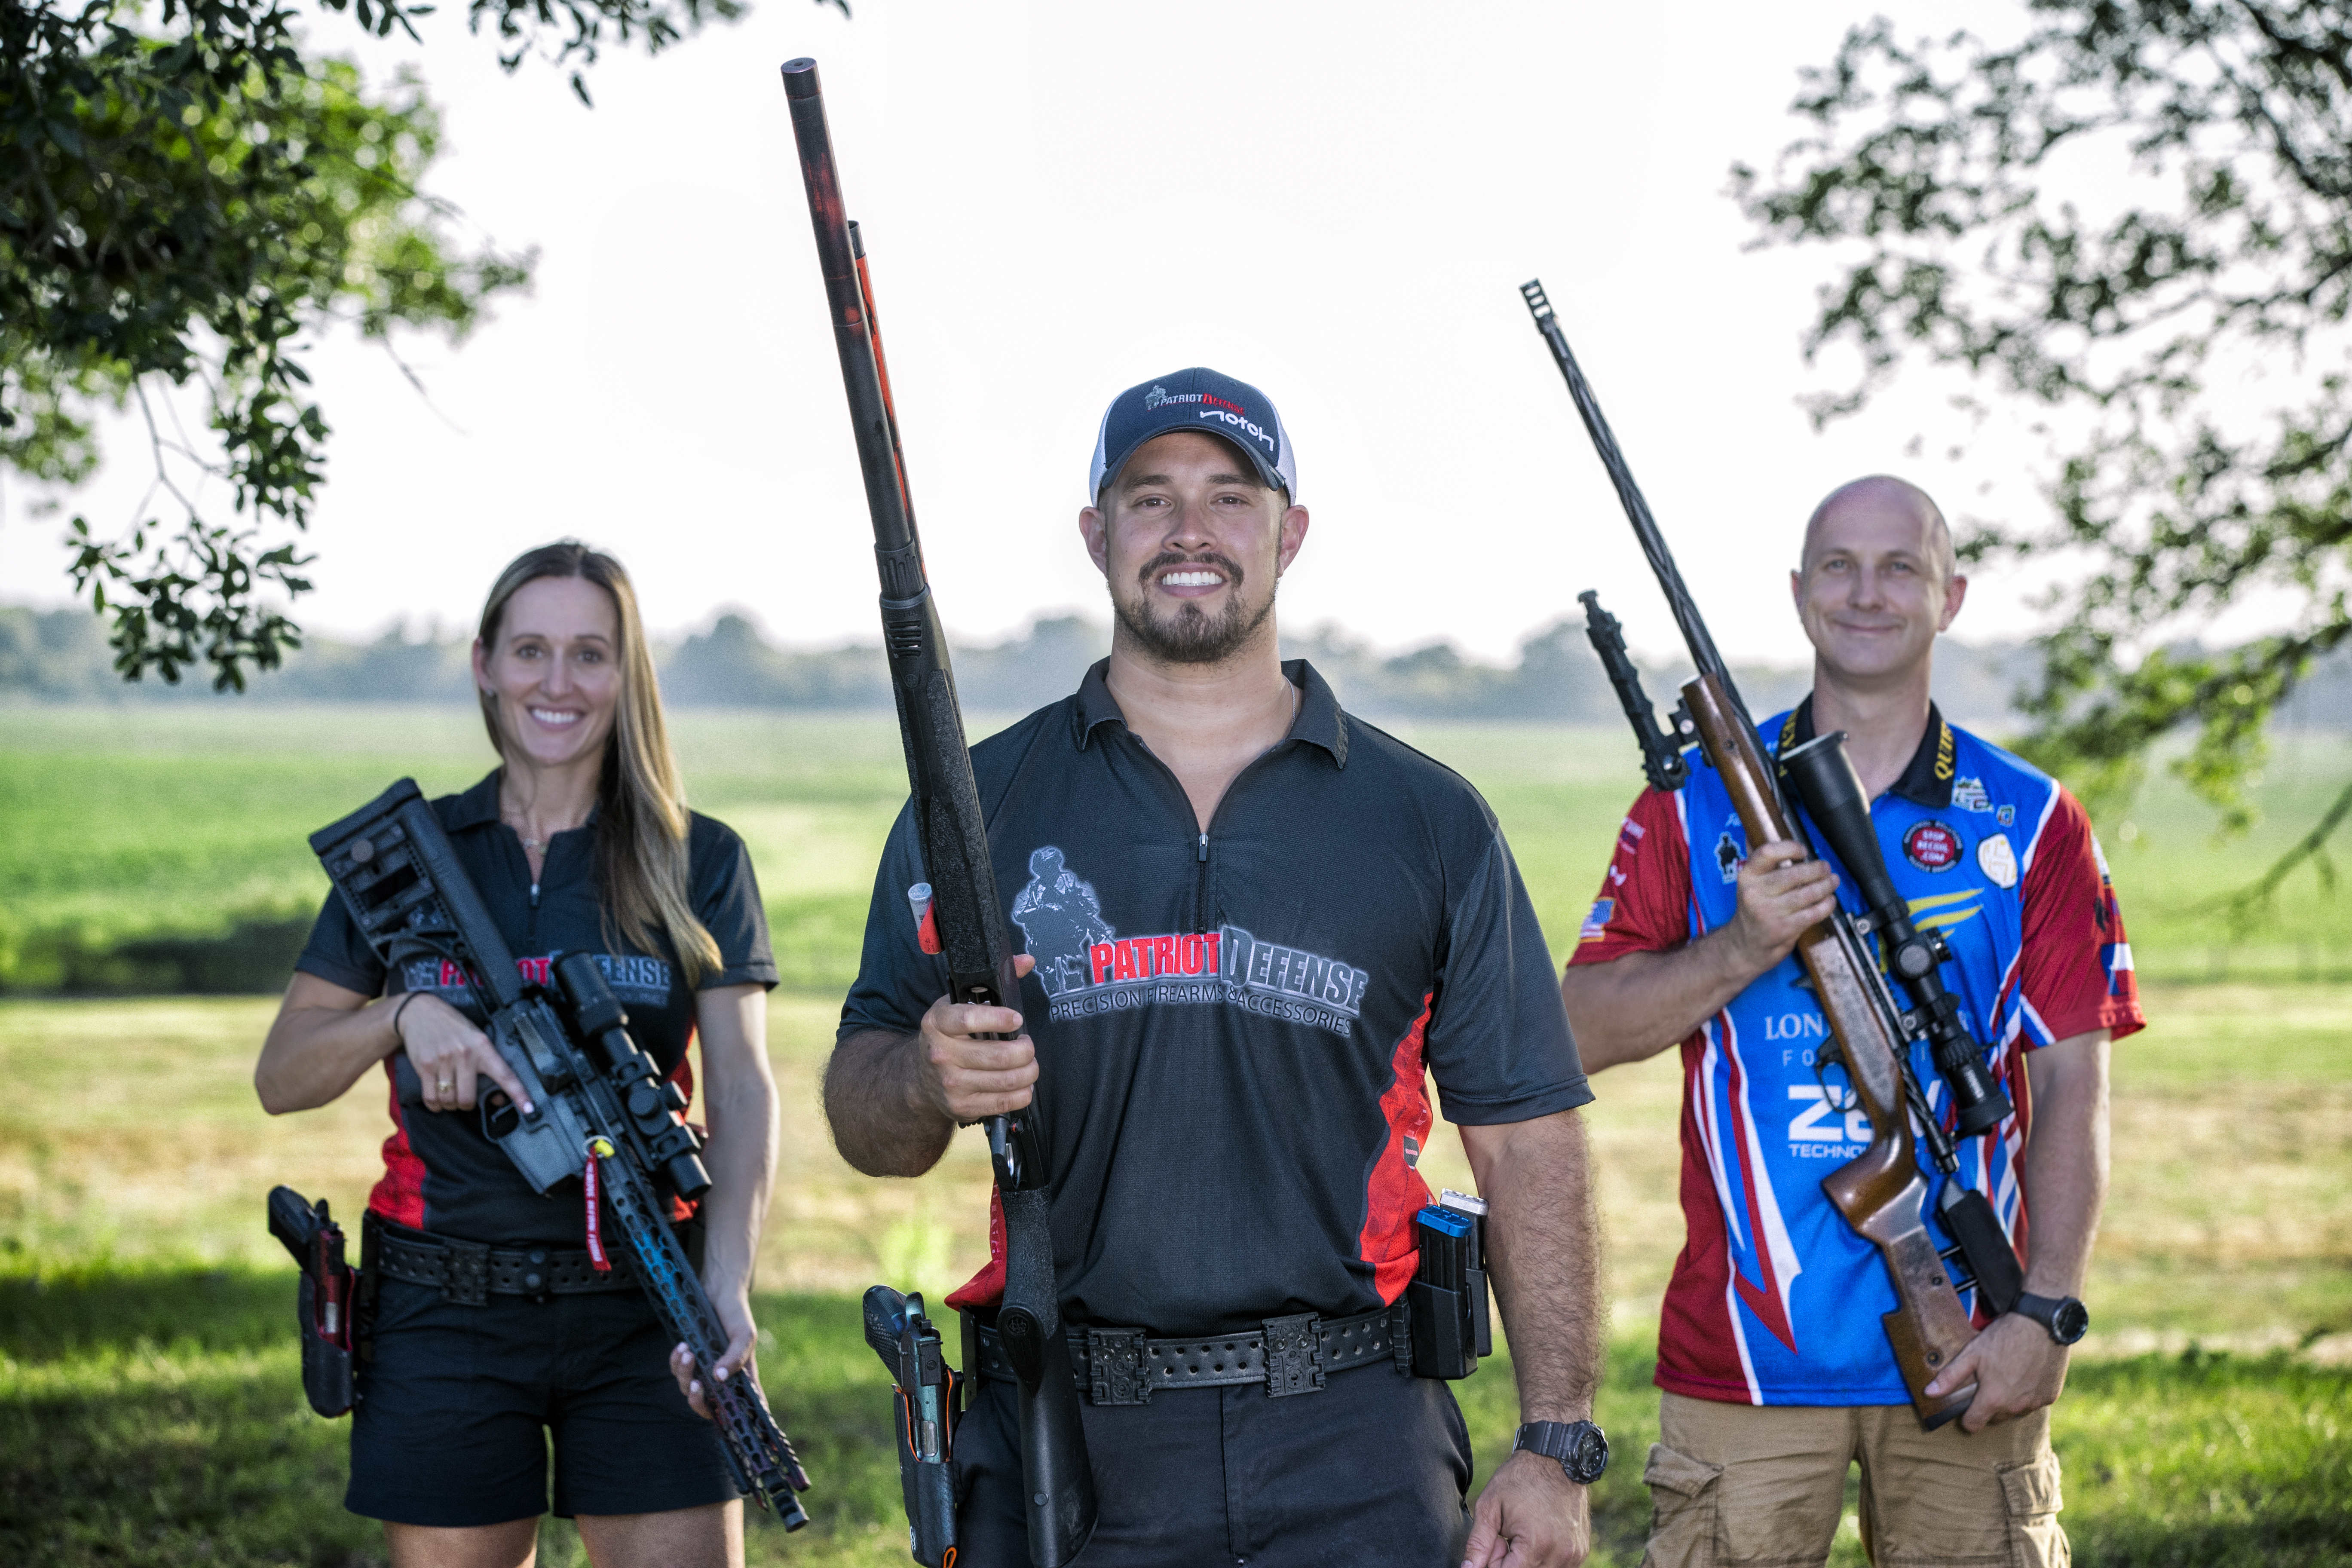 patriot-defense-custome-firearms-competition-shooting.jpg